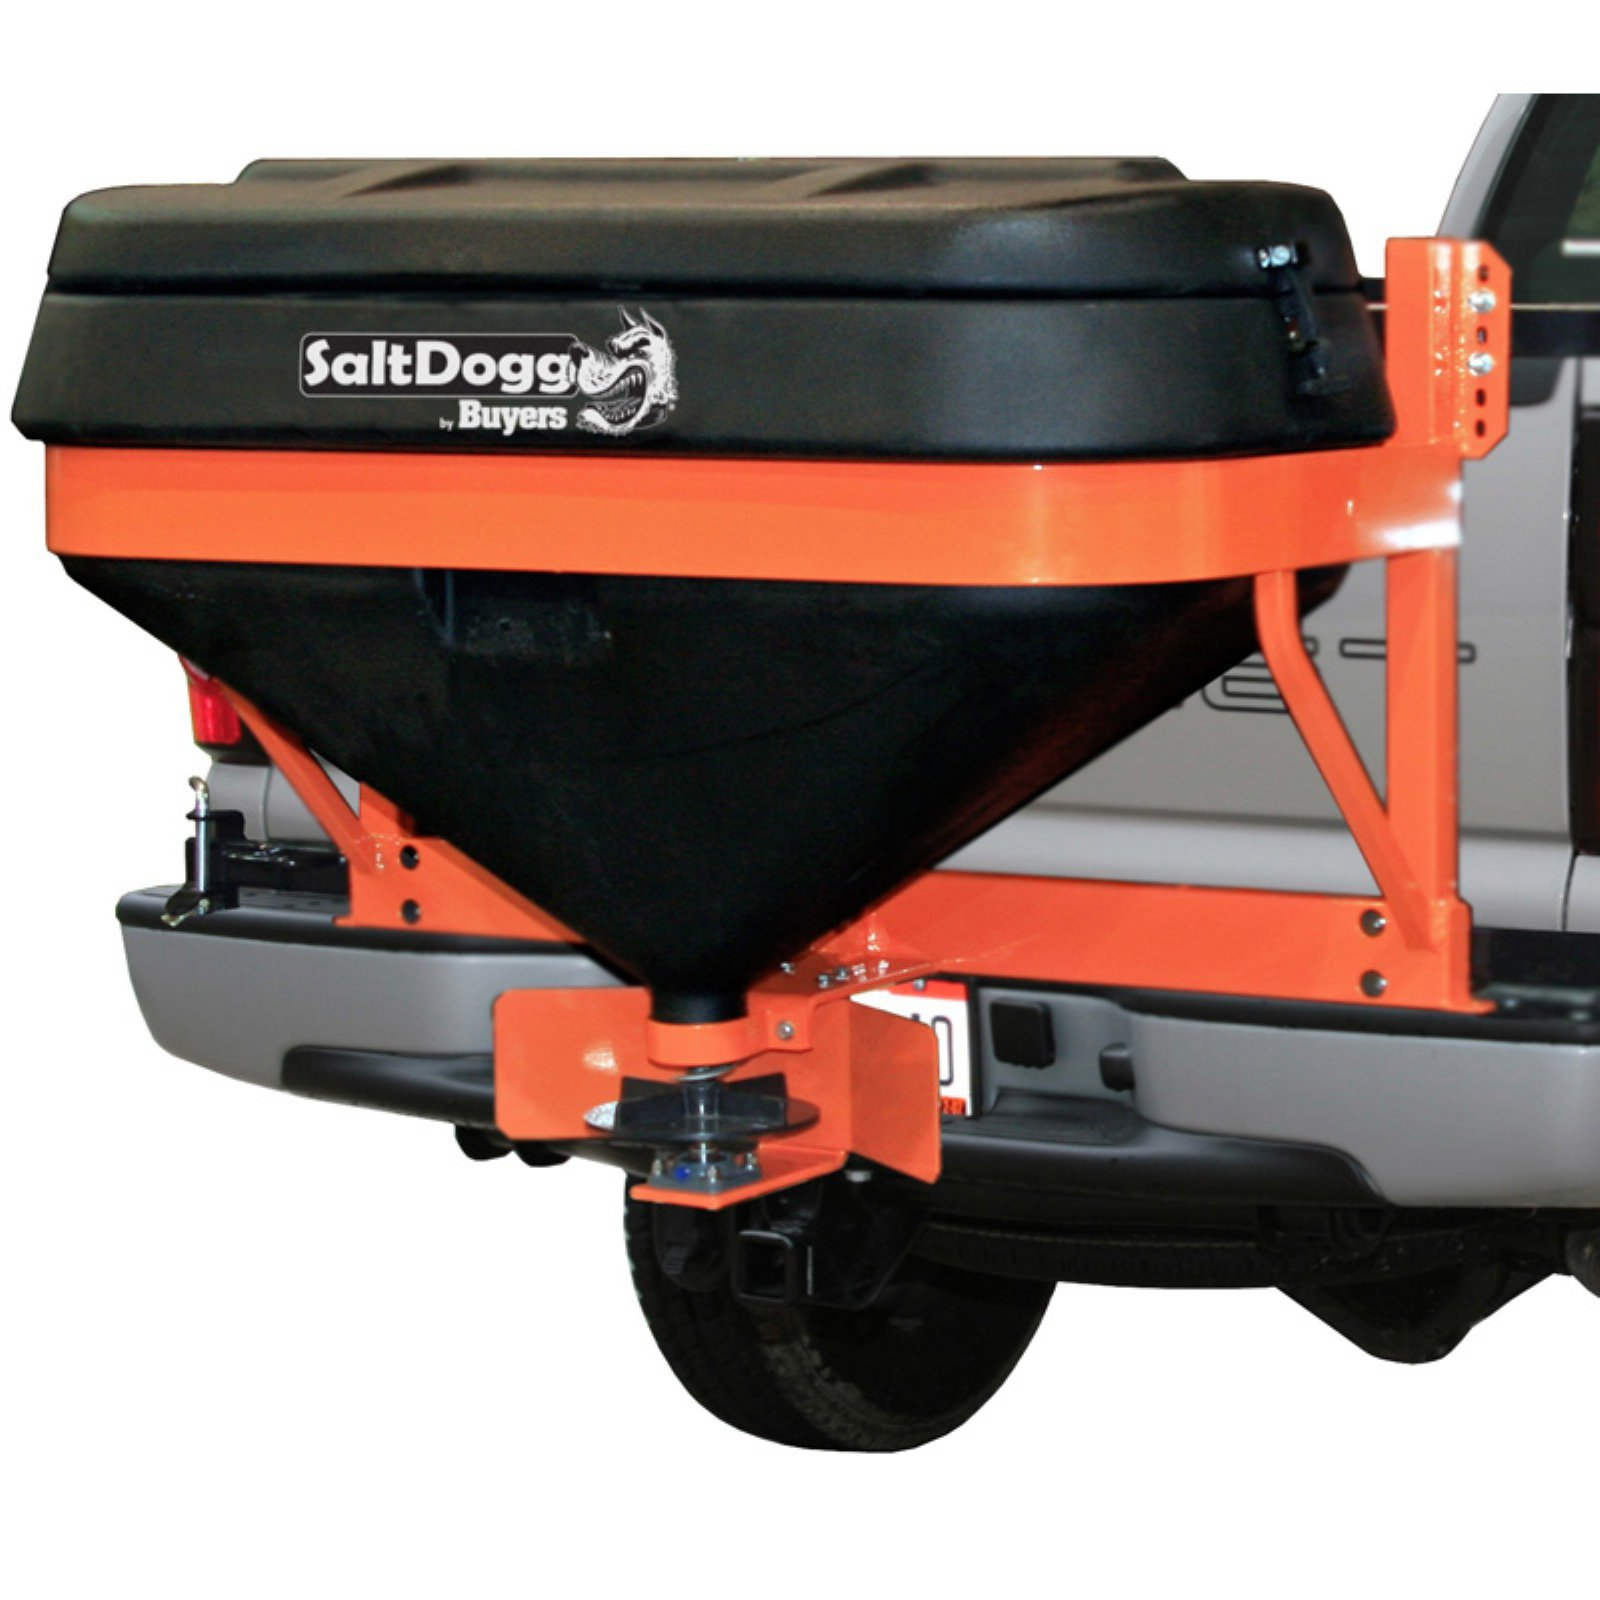 SaltDogg TGS05B Tailgate Hitch Salt Spreader by BUYERS PRODUCTS